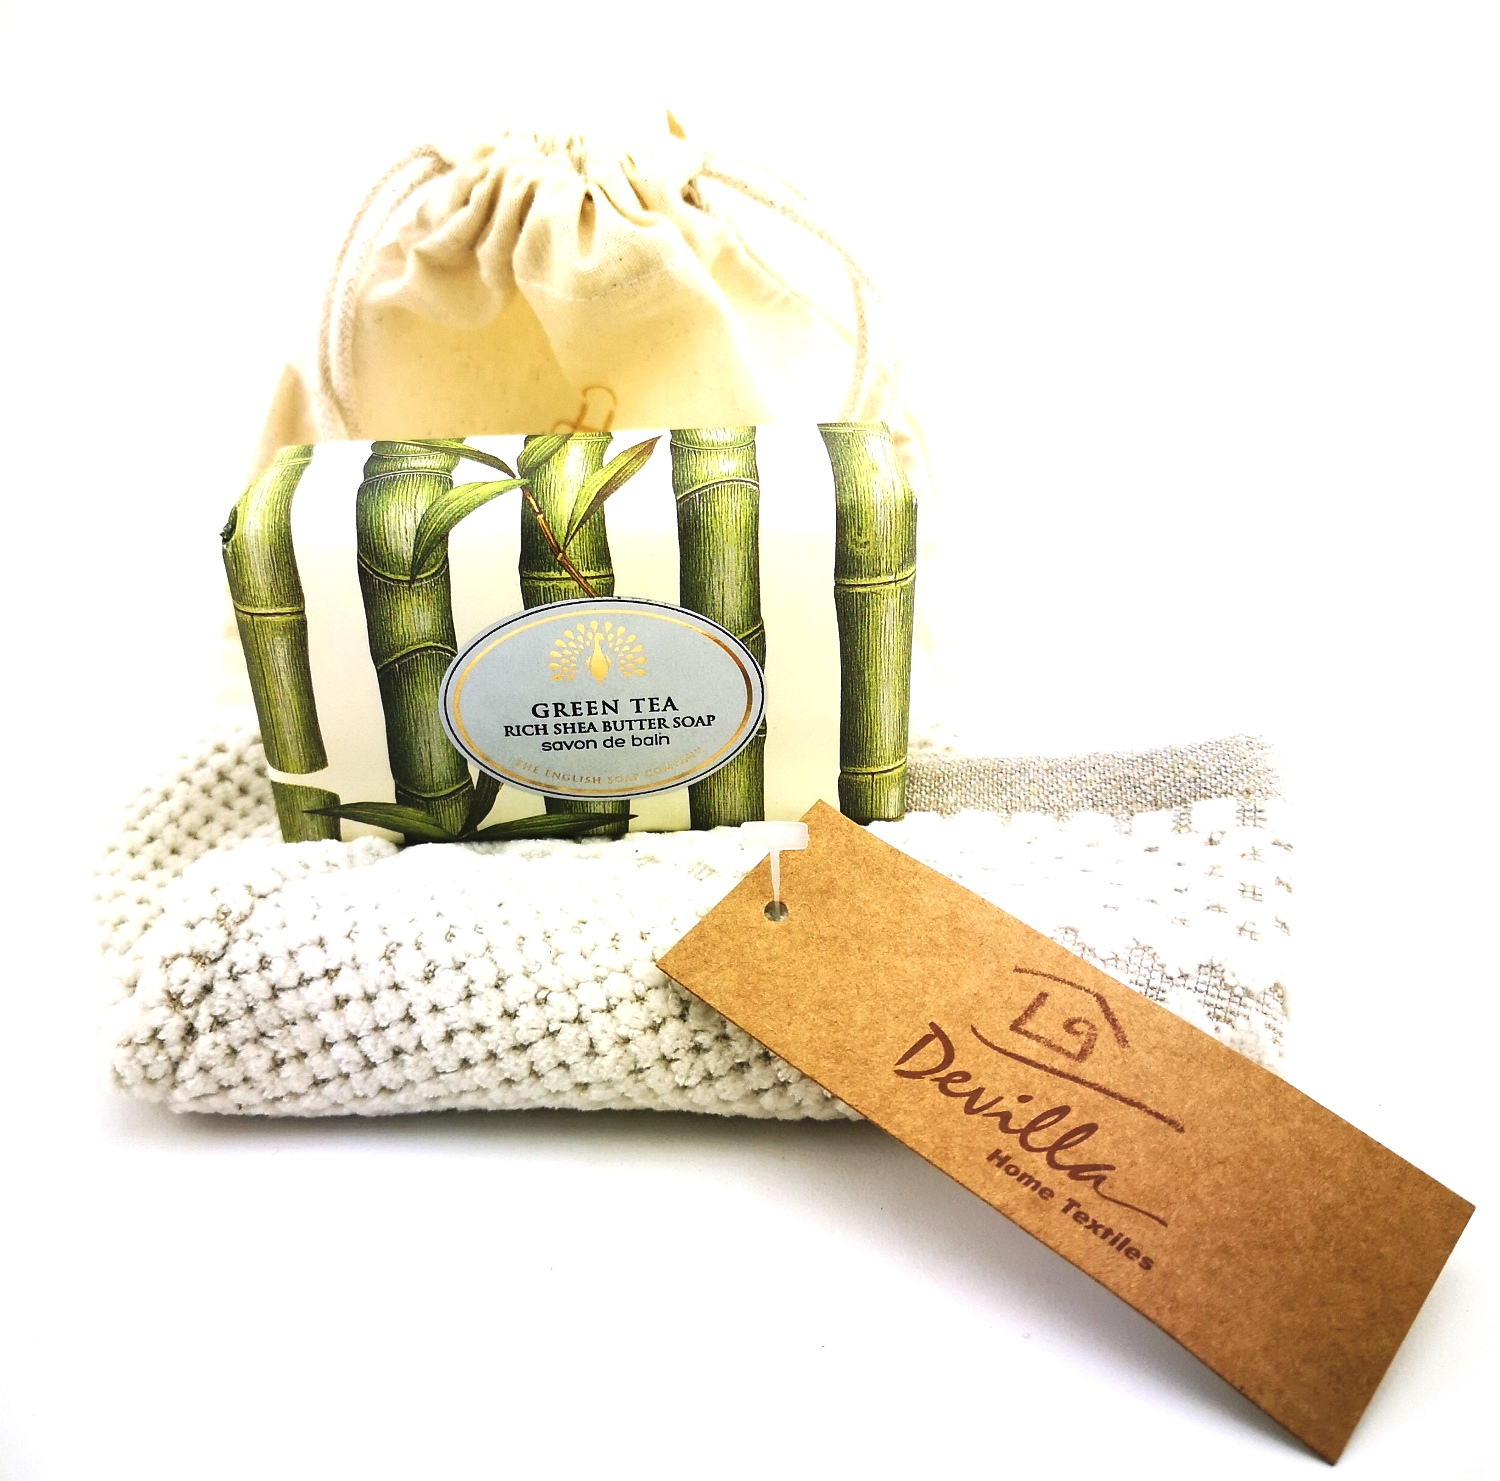 Geschenk-Set mit THE ENGLISH SOAP Luxury Shea Butter Soap